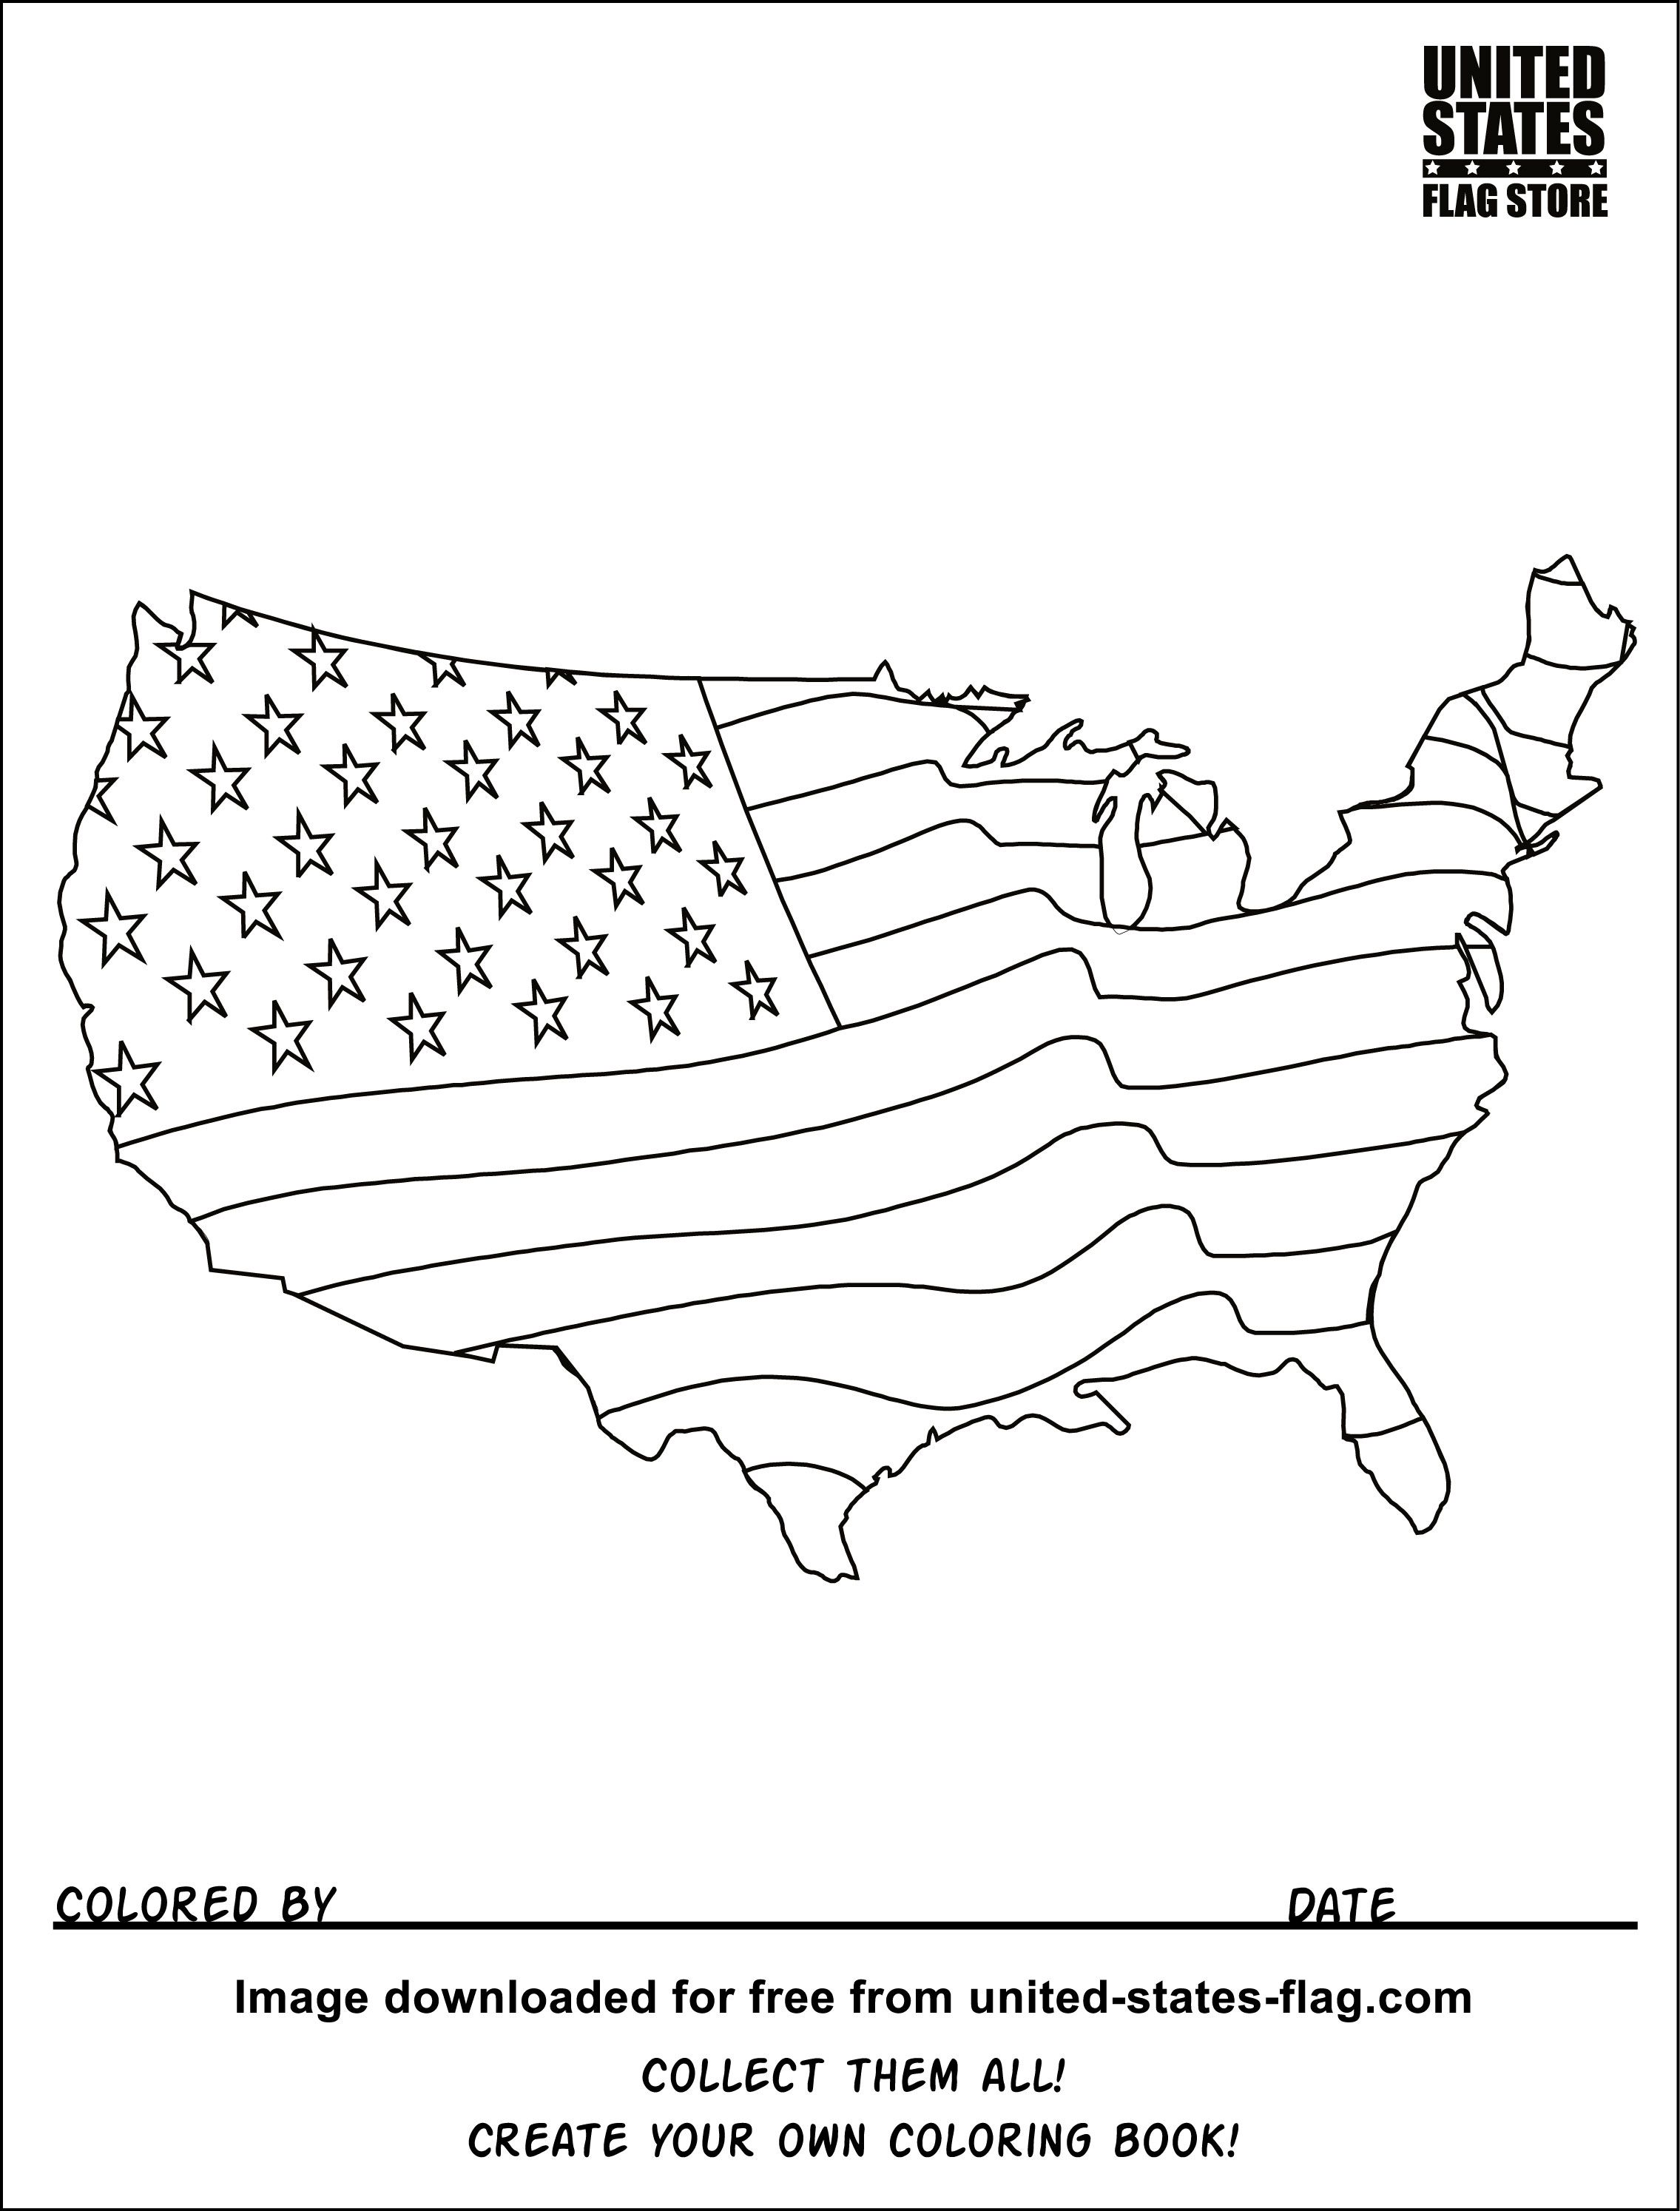 Memorial day flag coloring pages - Florida Template For Kids Army Coloring Pages For Kids Free American Flag Coloring Pages